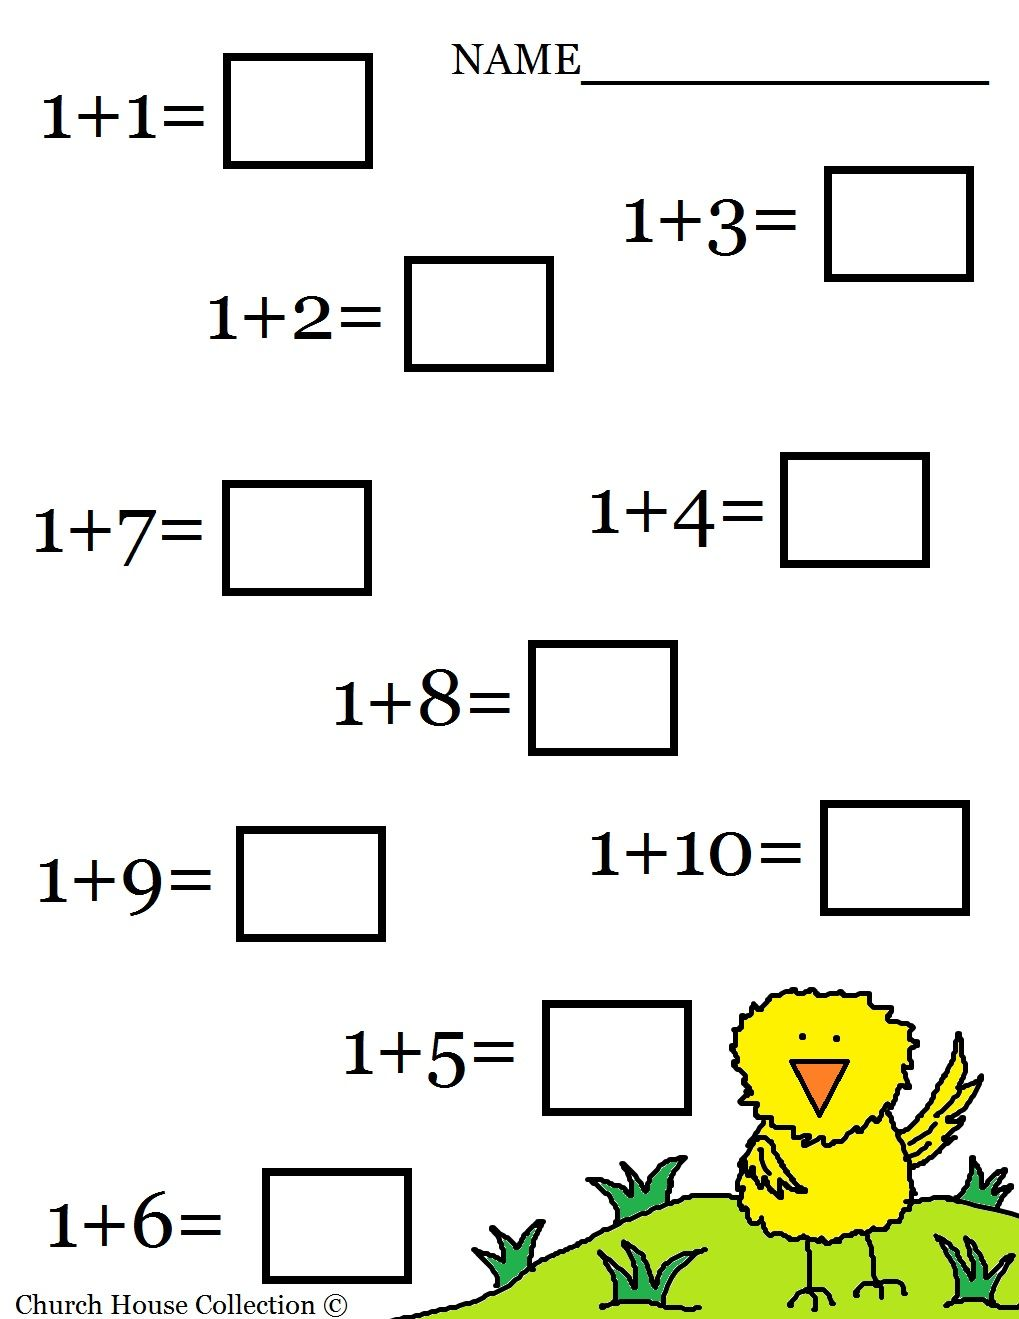 Aldiablosus  Unusual  Images About Worksheets  Math On Pinterest  Math Sheets  With Foxy  Images About Worksheets  Math On Pinterest  Math Sheets Math Worksheets For Kindergarten And Simple Addition With Lovely Ible And Able Worksheets Also Worksheets For Grade  English Grammar In Addition  Digit By  Digit Multiplication Worksheet And Qualitative And Quantitative Worksheet As Well As Three Letter Rhyming Words Worksheets Additionally Ks Comprehension Worksheets Free From Pinterestcom With Aldiablosus  Foxy  Images About Worksheets  Math On Pinterest  Math Sheets  With Lovely  Images About Worksheets  Math On Pinterest  Math Sheets Math Worksheets For Kindergarten And Simple Addition And Unusual Ible And Able Worksheets Also Worksheets For Grade  English Grammar In Addition  Digit By  Digit Multiplication Worksheet From Pinterestcom